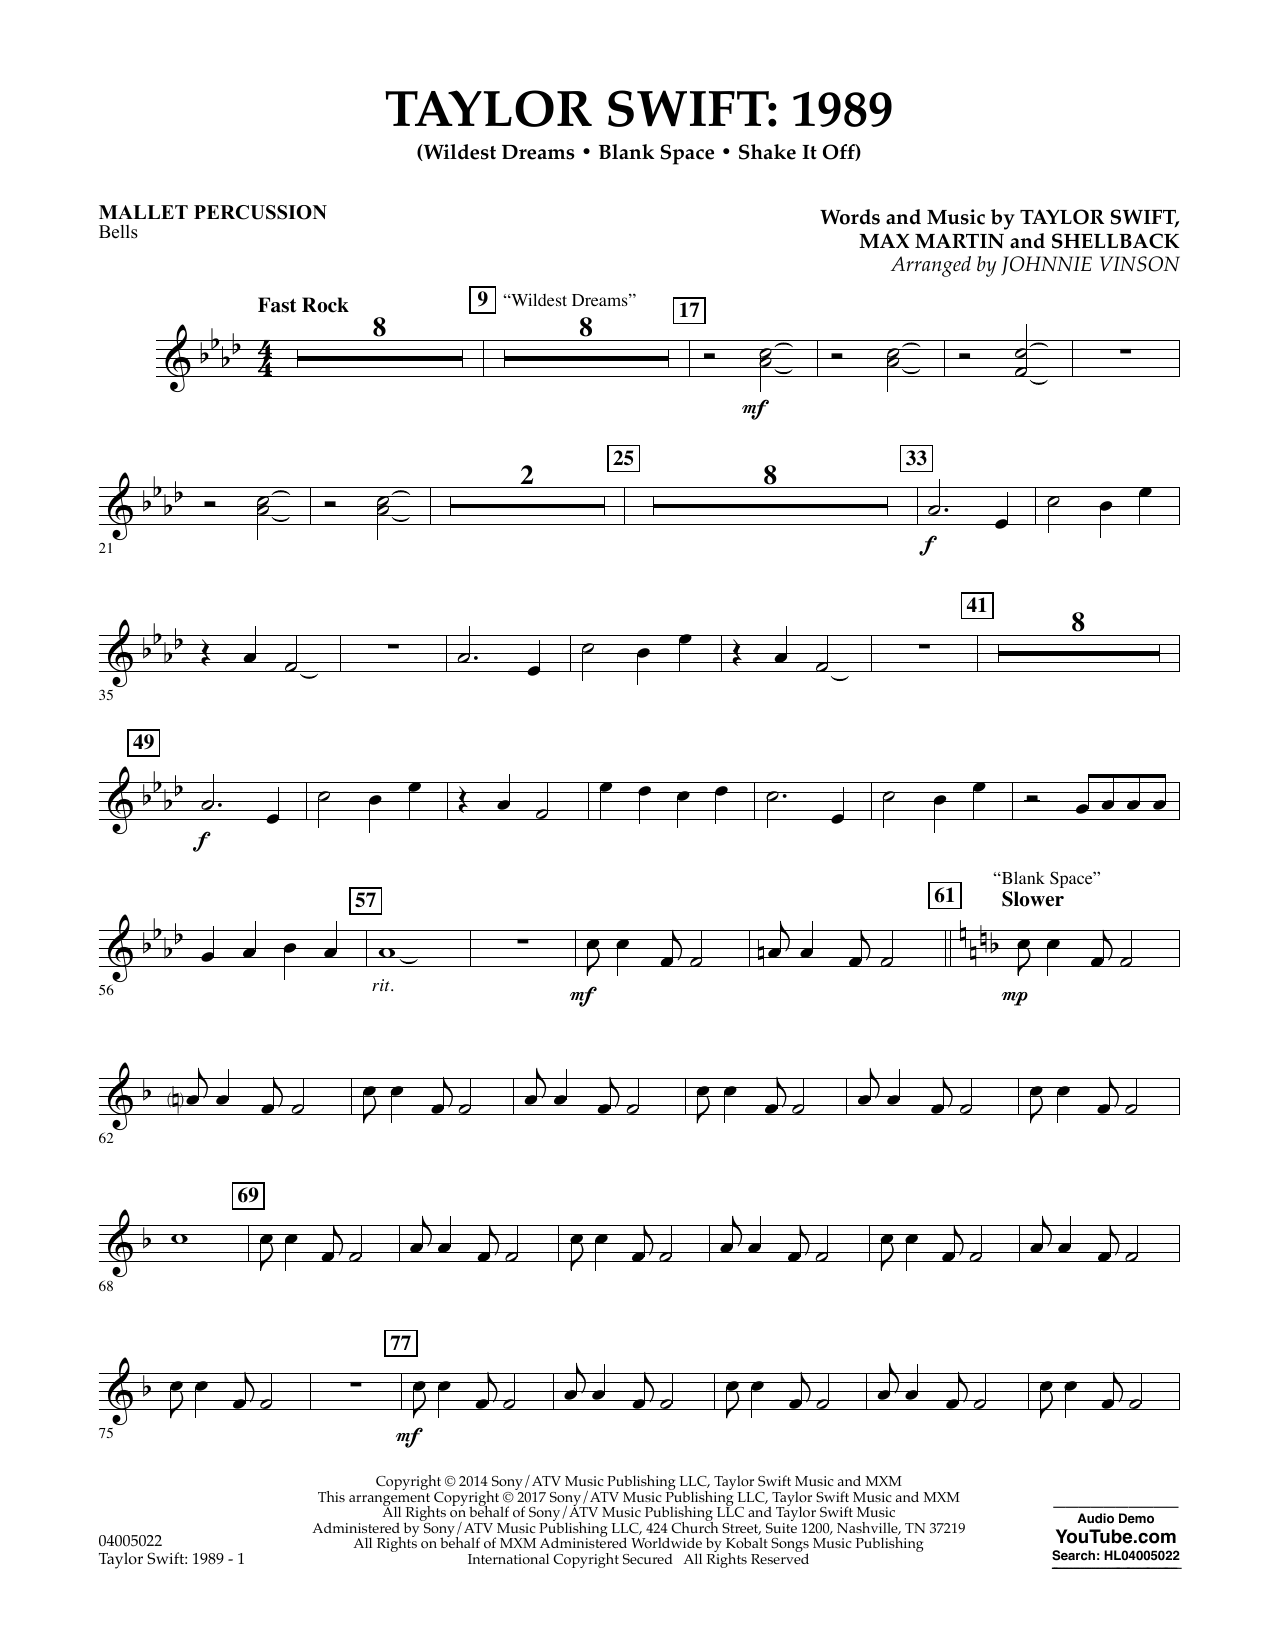 Taylor Swift: 1989 - Mallet Percussion Sheet Music